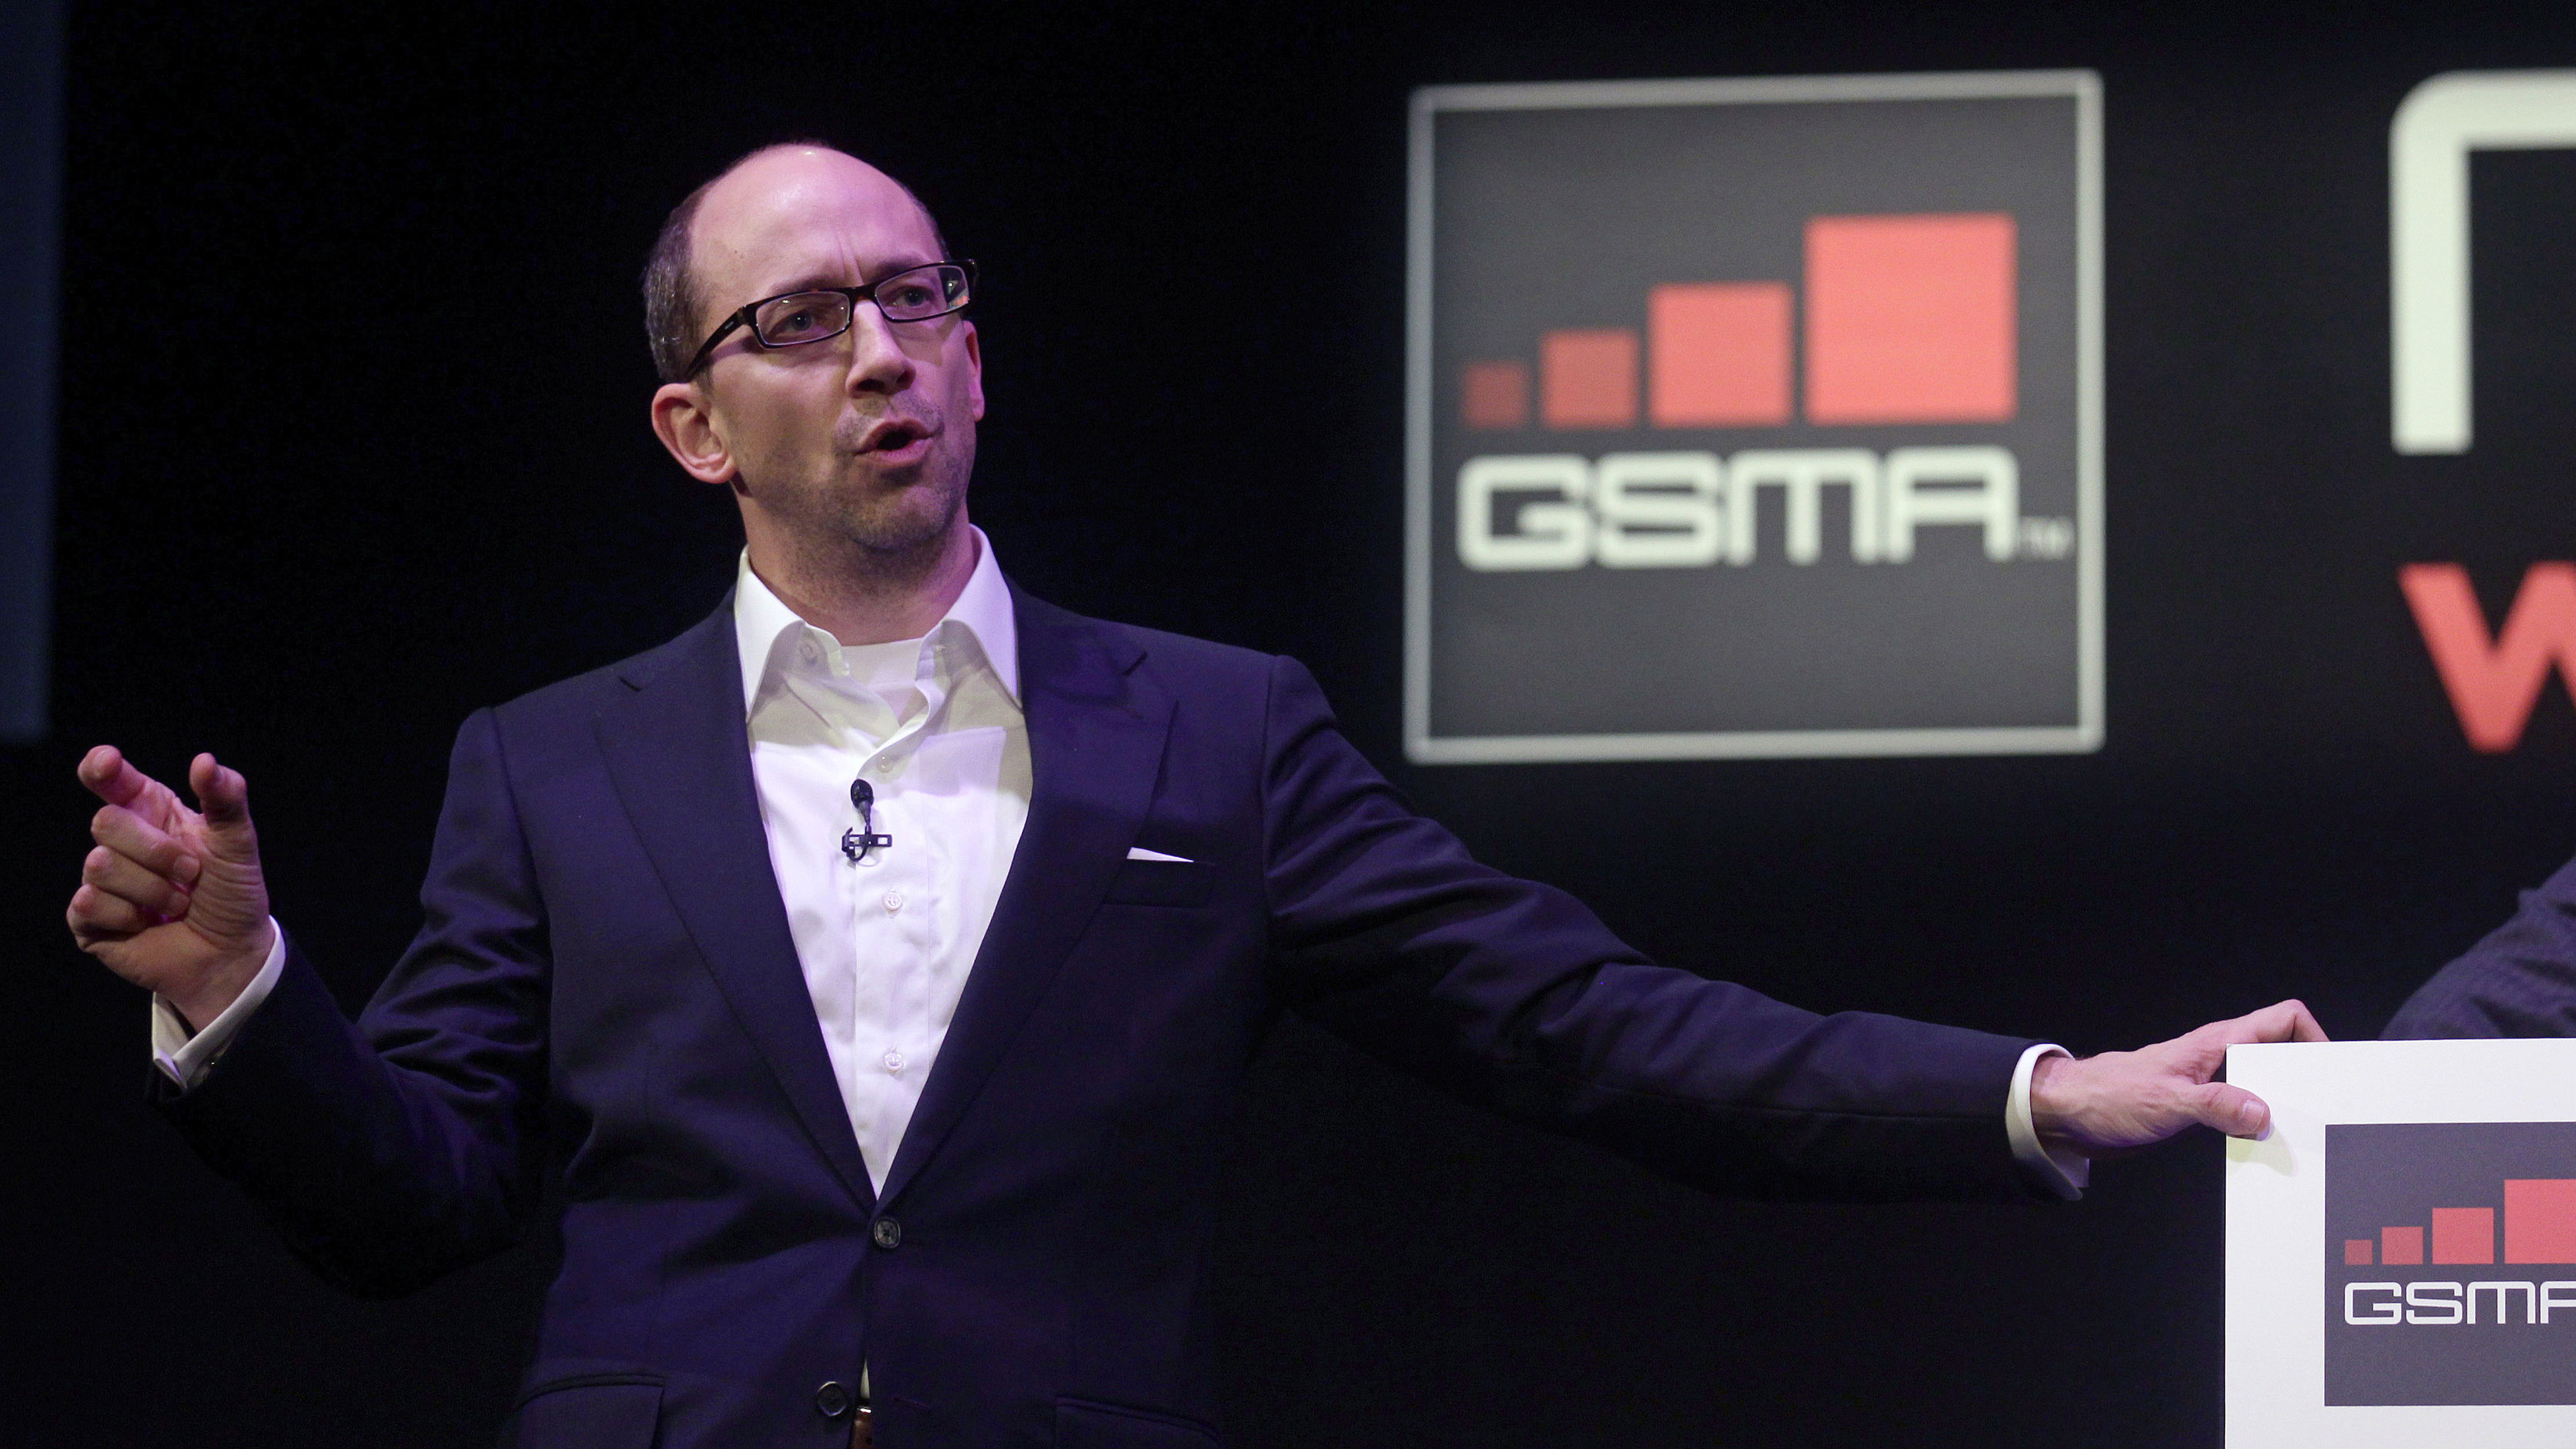 Twitter's CEO Dick Costolo gestures during a conference at the GSMA Mobile World Congress in Barcelona, February 14, 2011. The GSMA Mobile World Congress, representing the interests of the worldwide mobile communications industry, will take place from February 14 to February 17 in Barcelona. REUTERS/Albert Gea (SPAIN - Tags: BUSINESS SCI TECH)